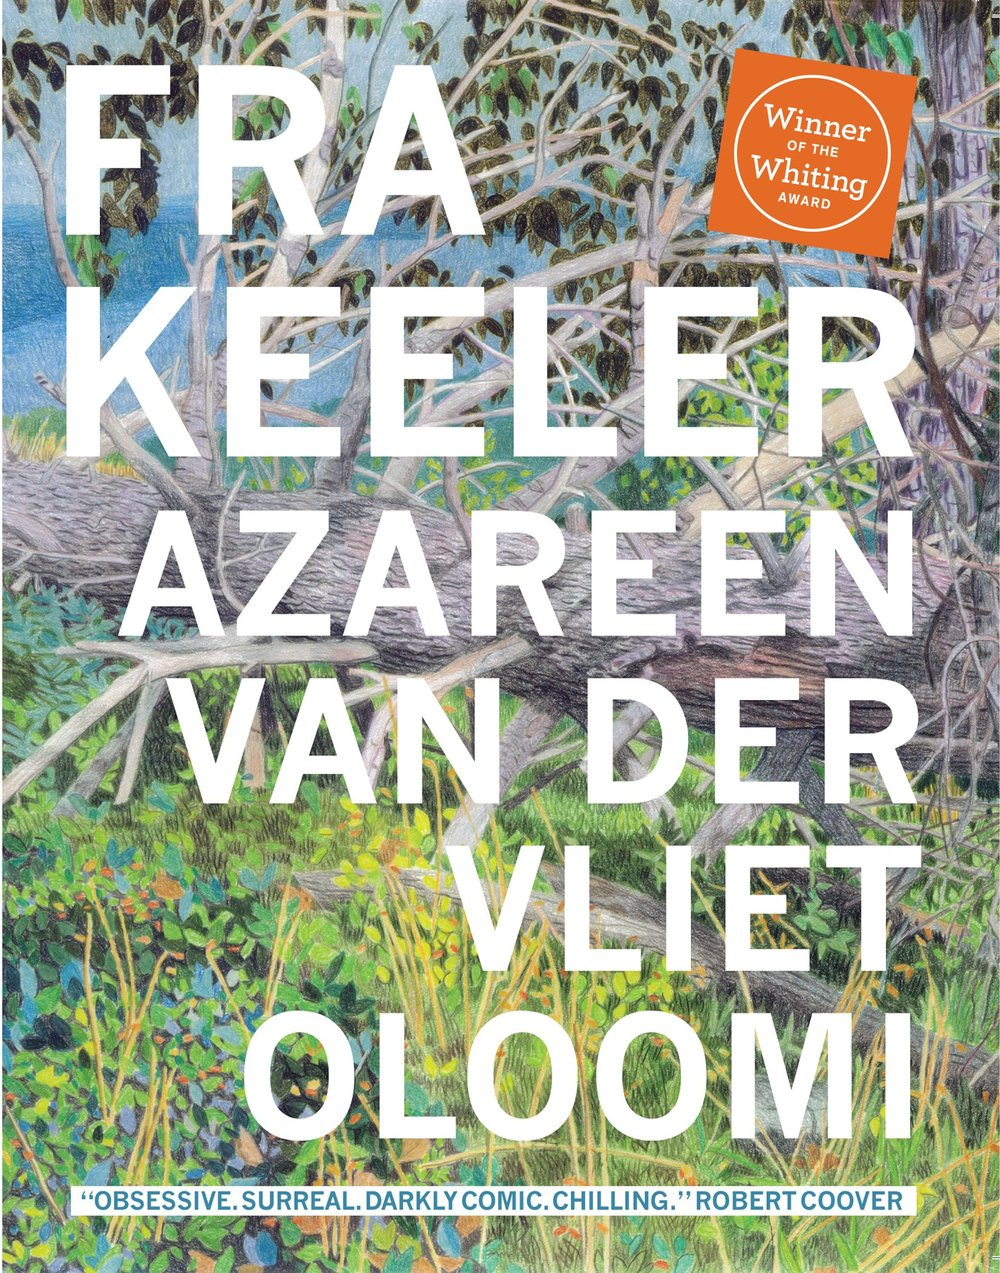 Insanity is a common theme in literary fiction and fear in people. If you're using this dark, relatable trope, read  Fra Keeler  to learn how Azareen Van Der Vliet Oloomi uses stream of consciousness, symptoms of madness, and internal conflict, so her readers experience what it's like to go insane alongside her narrator. If you're trying to imporve your writing, check out this list of great writing books  https://www.ignitedinkwriting.com/13-writing-craft-books-list